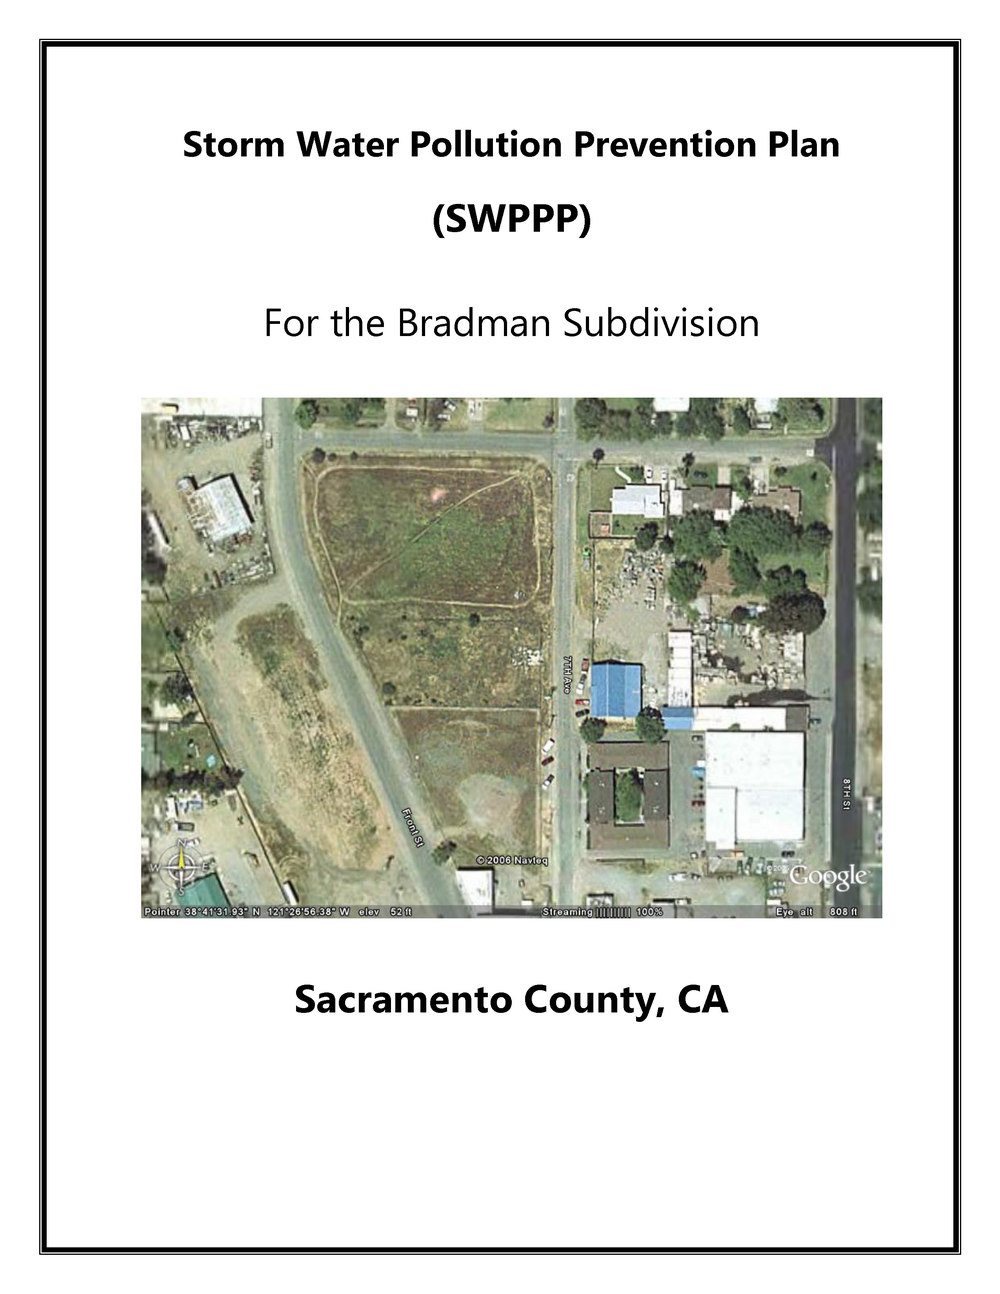 2006   Storm Water Pollution Prevention Plan (SWPPP) for Bradman Subdivision